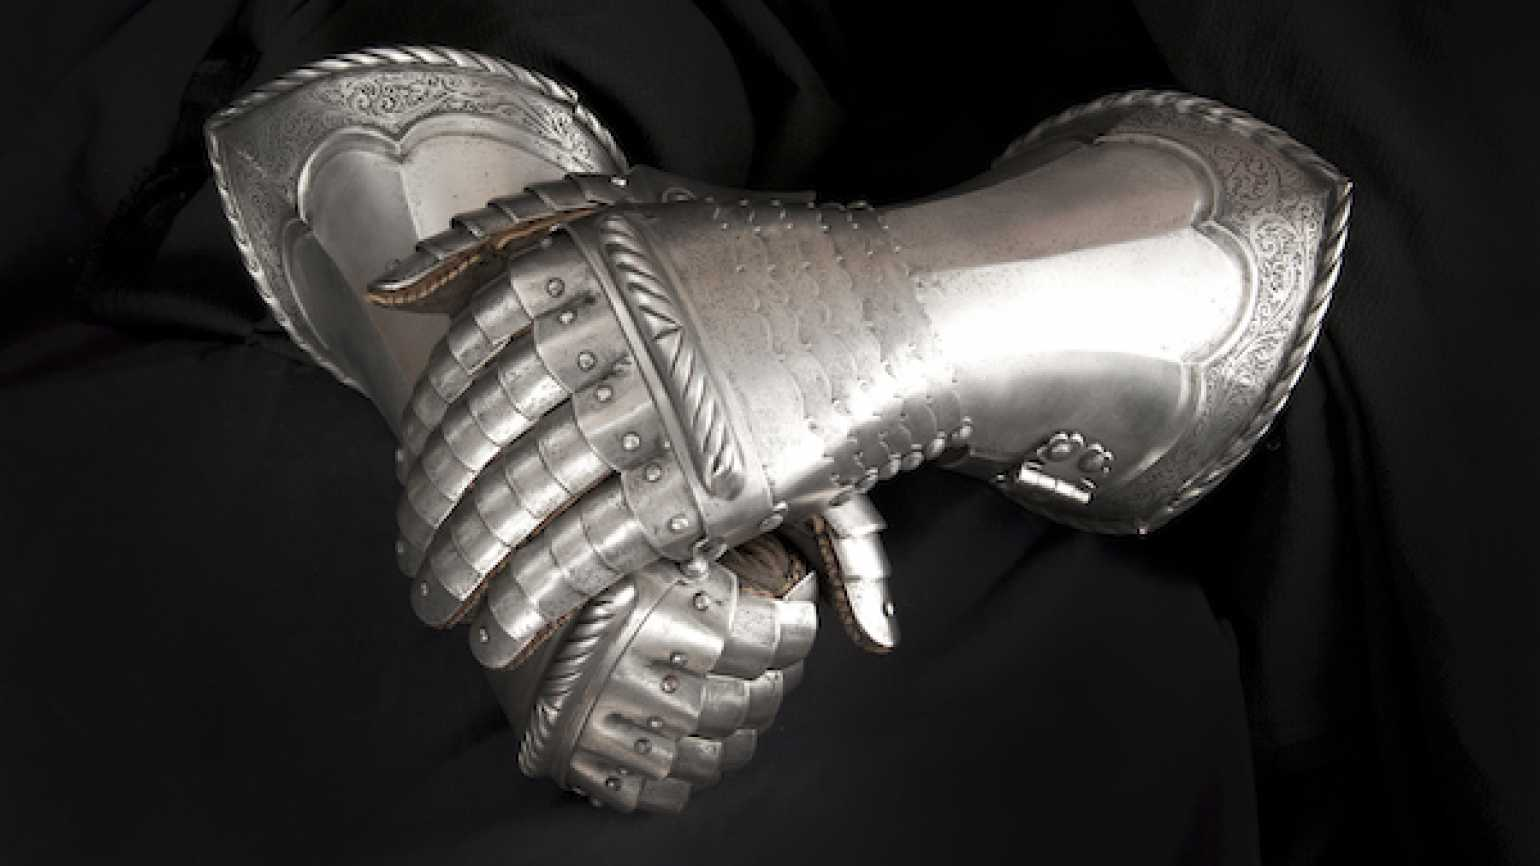 God's armor available to all, soldier and civilian alike.